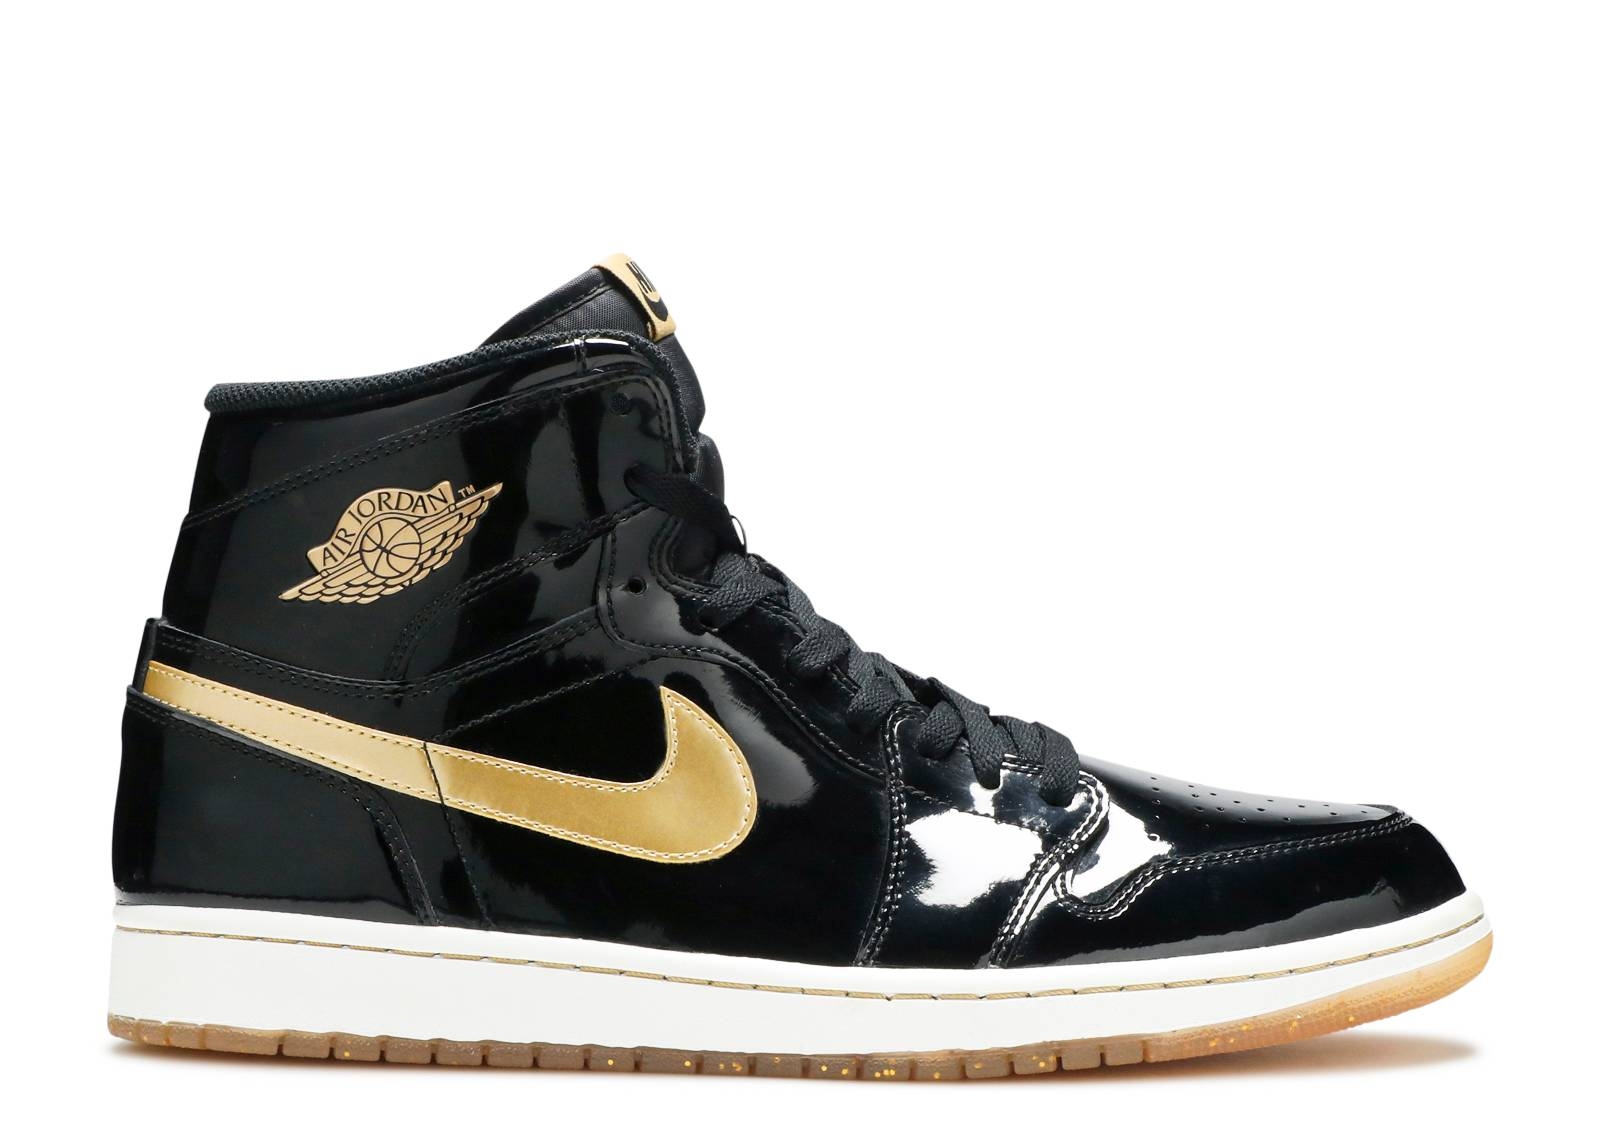 watch save up to 80% best deals on Air Jordan 1 Retro High OG 'Black And Gold'